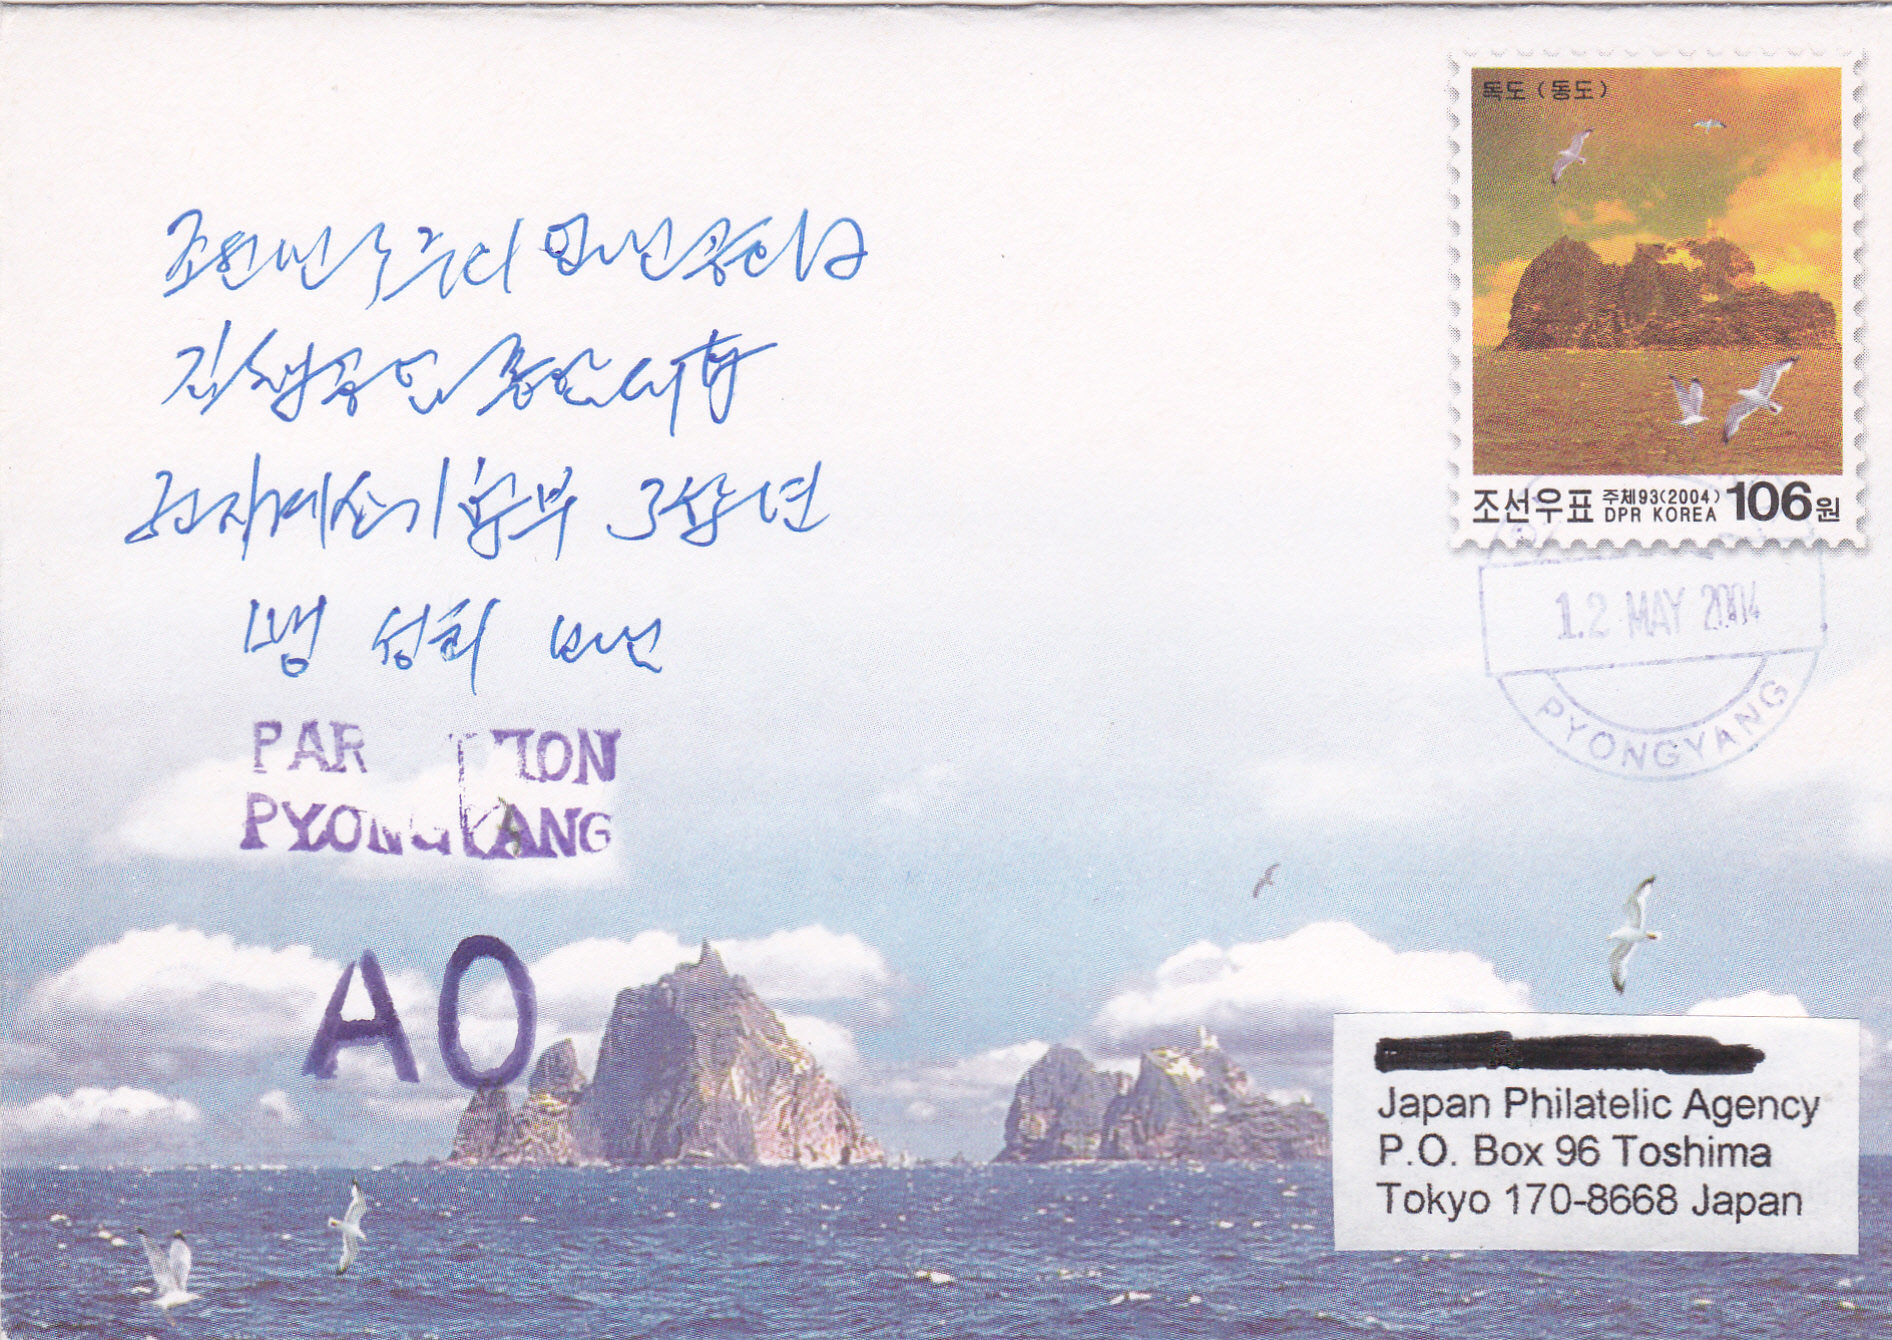 L9648, Korea First Day Postal Cover, Dokdo Islands Map (Takeshima), 2004